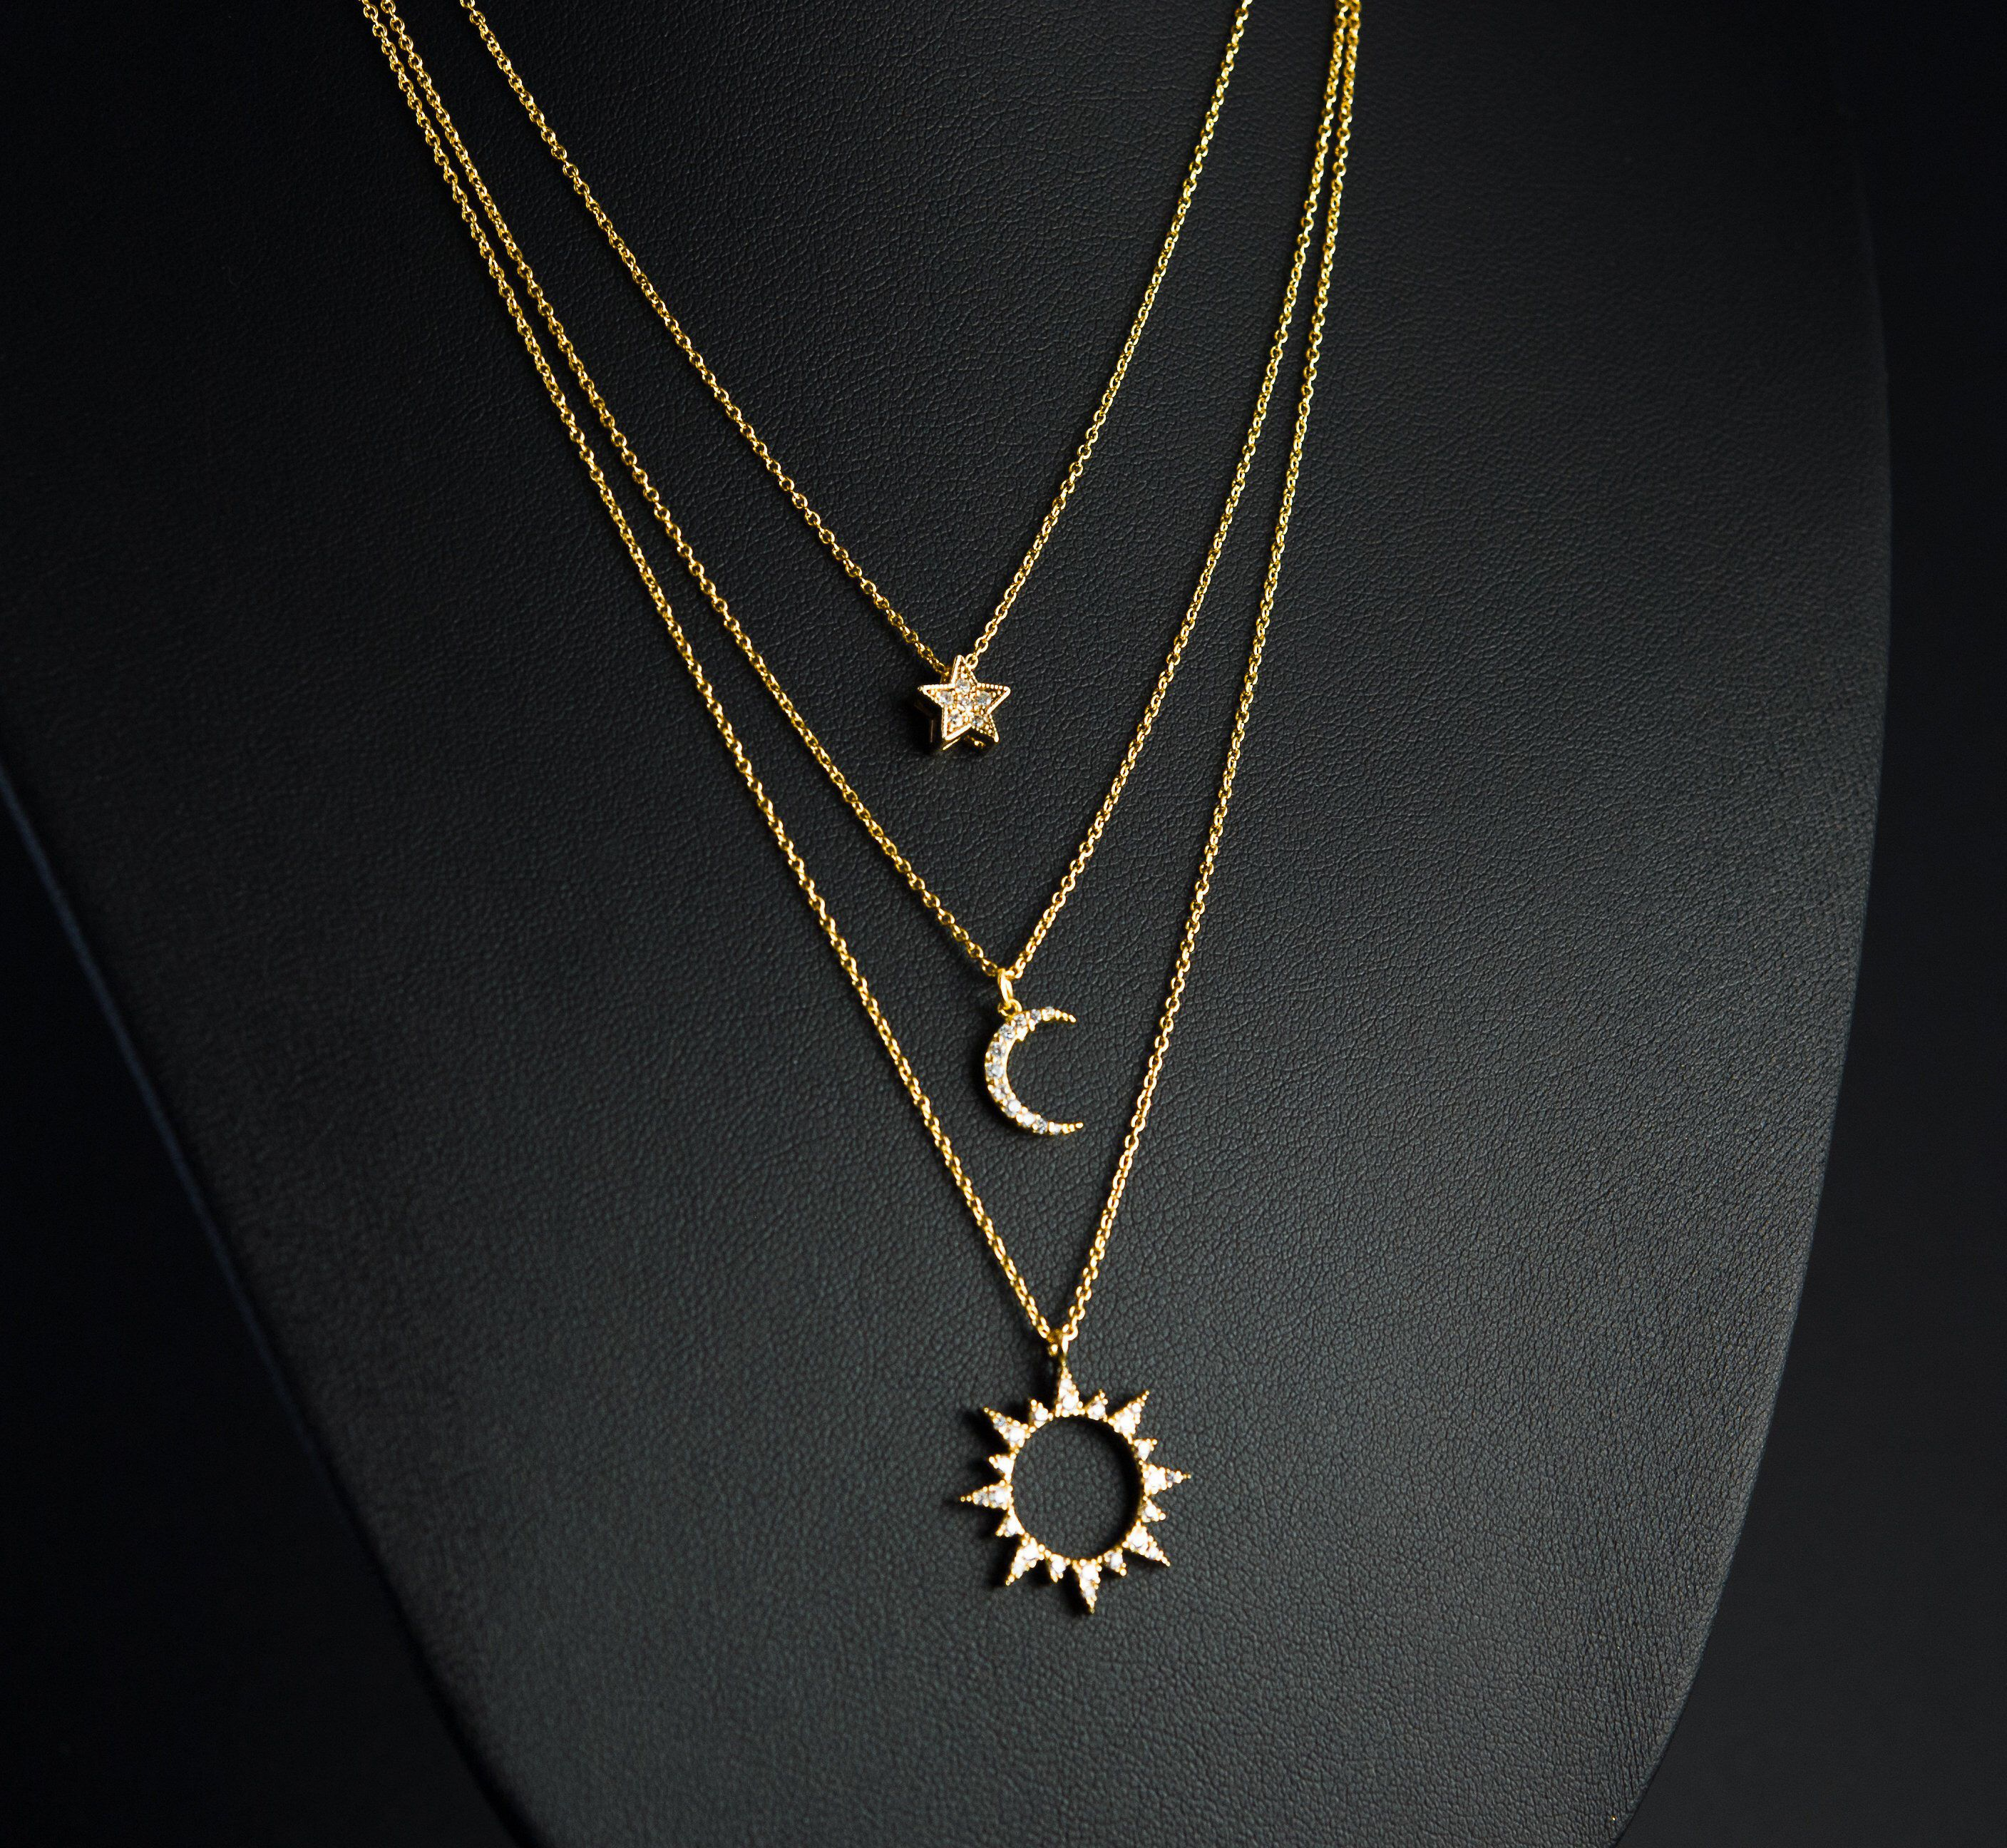 Jewels Obsession Sun Necklace 14K Yellow Gold-plated 925 Silver Sun Pendant with 16 Necklace